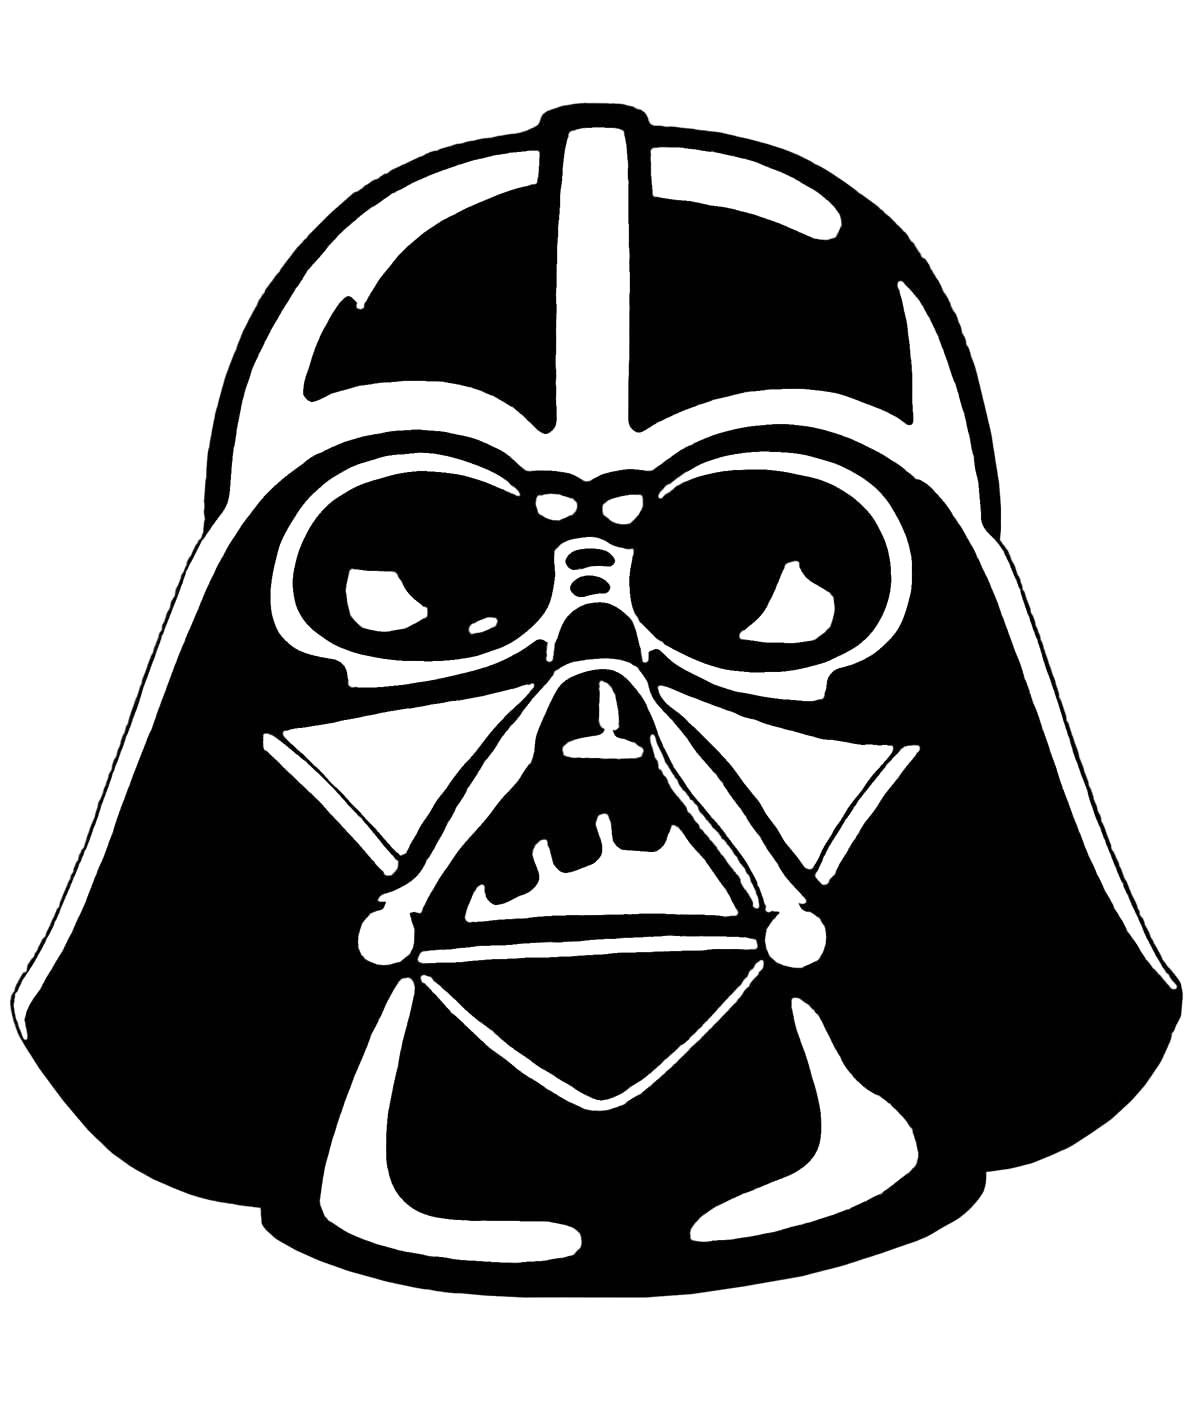 Darth vader clipart clip art. Cool design starwars stencil